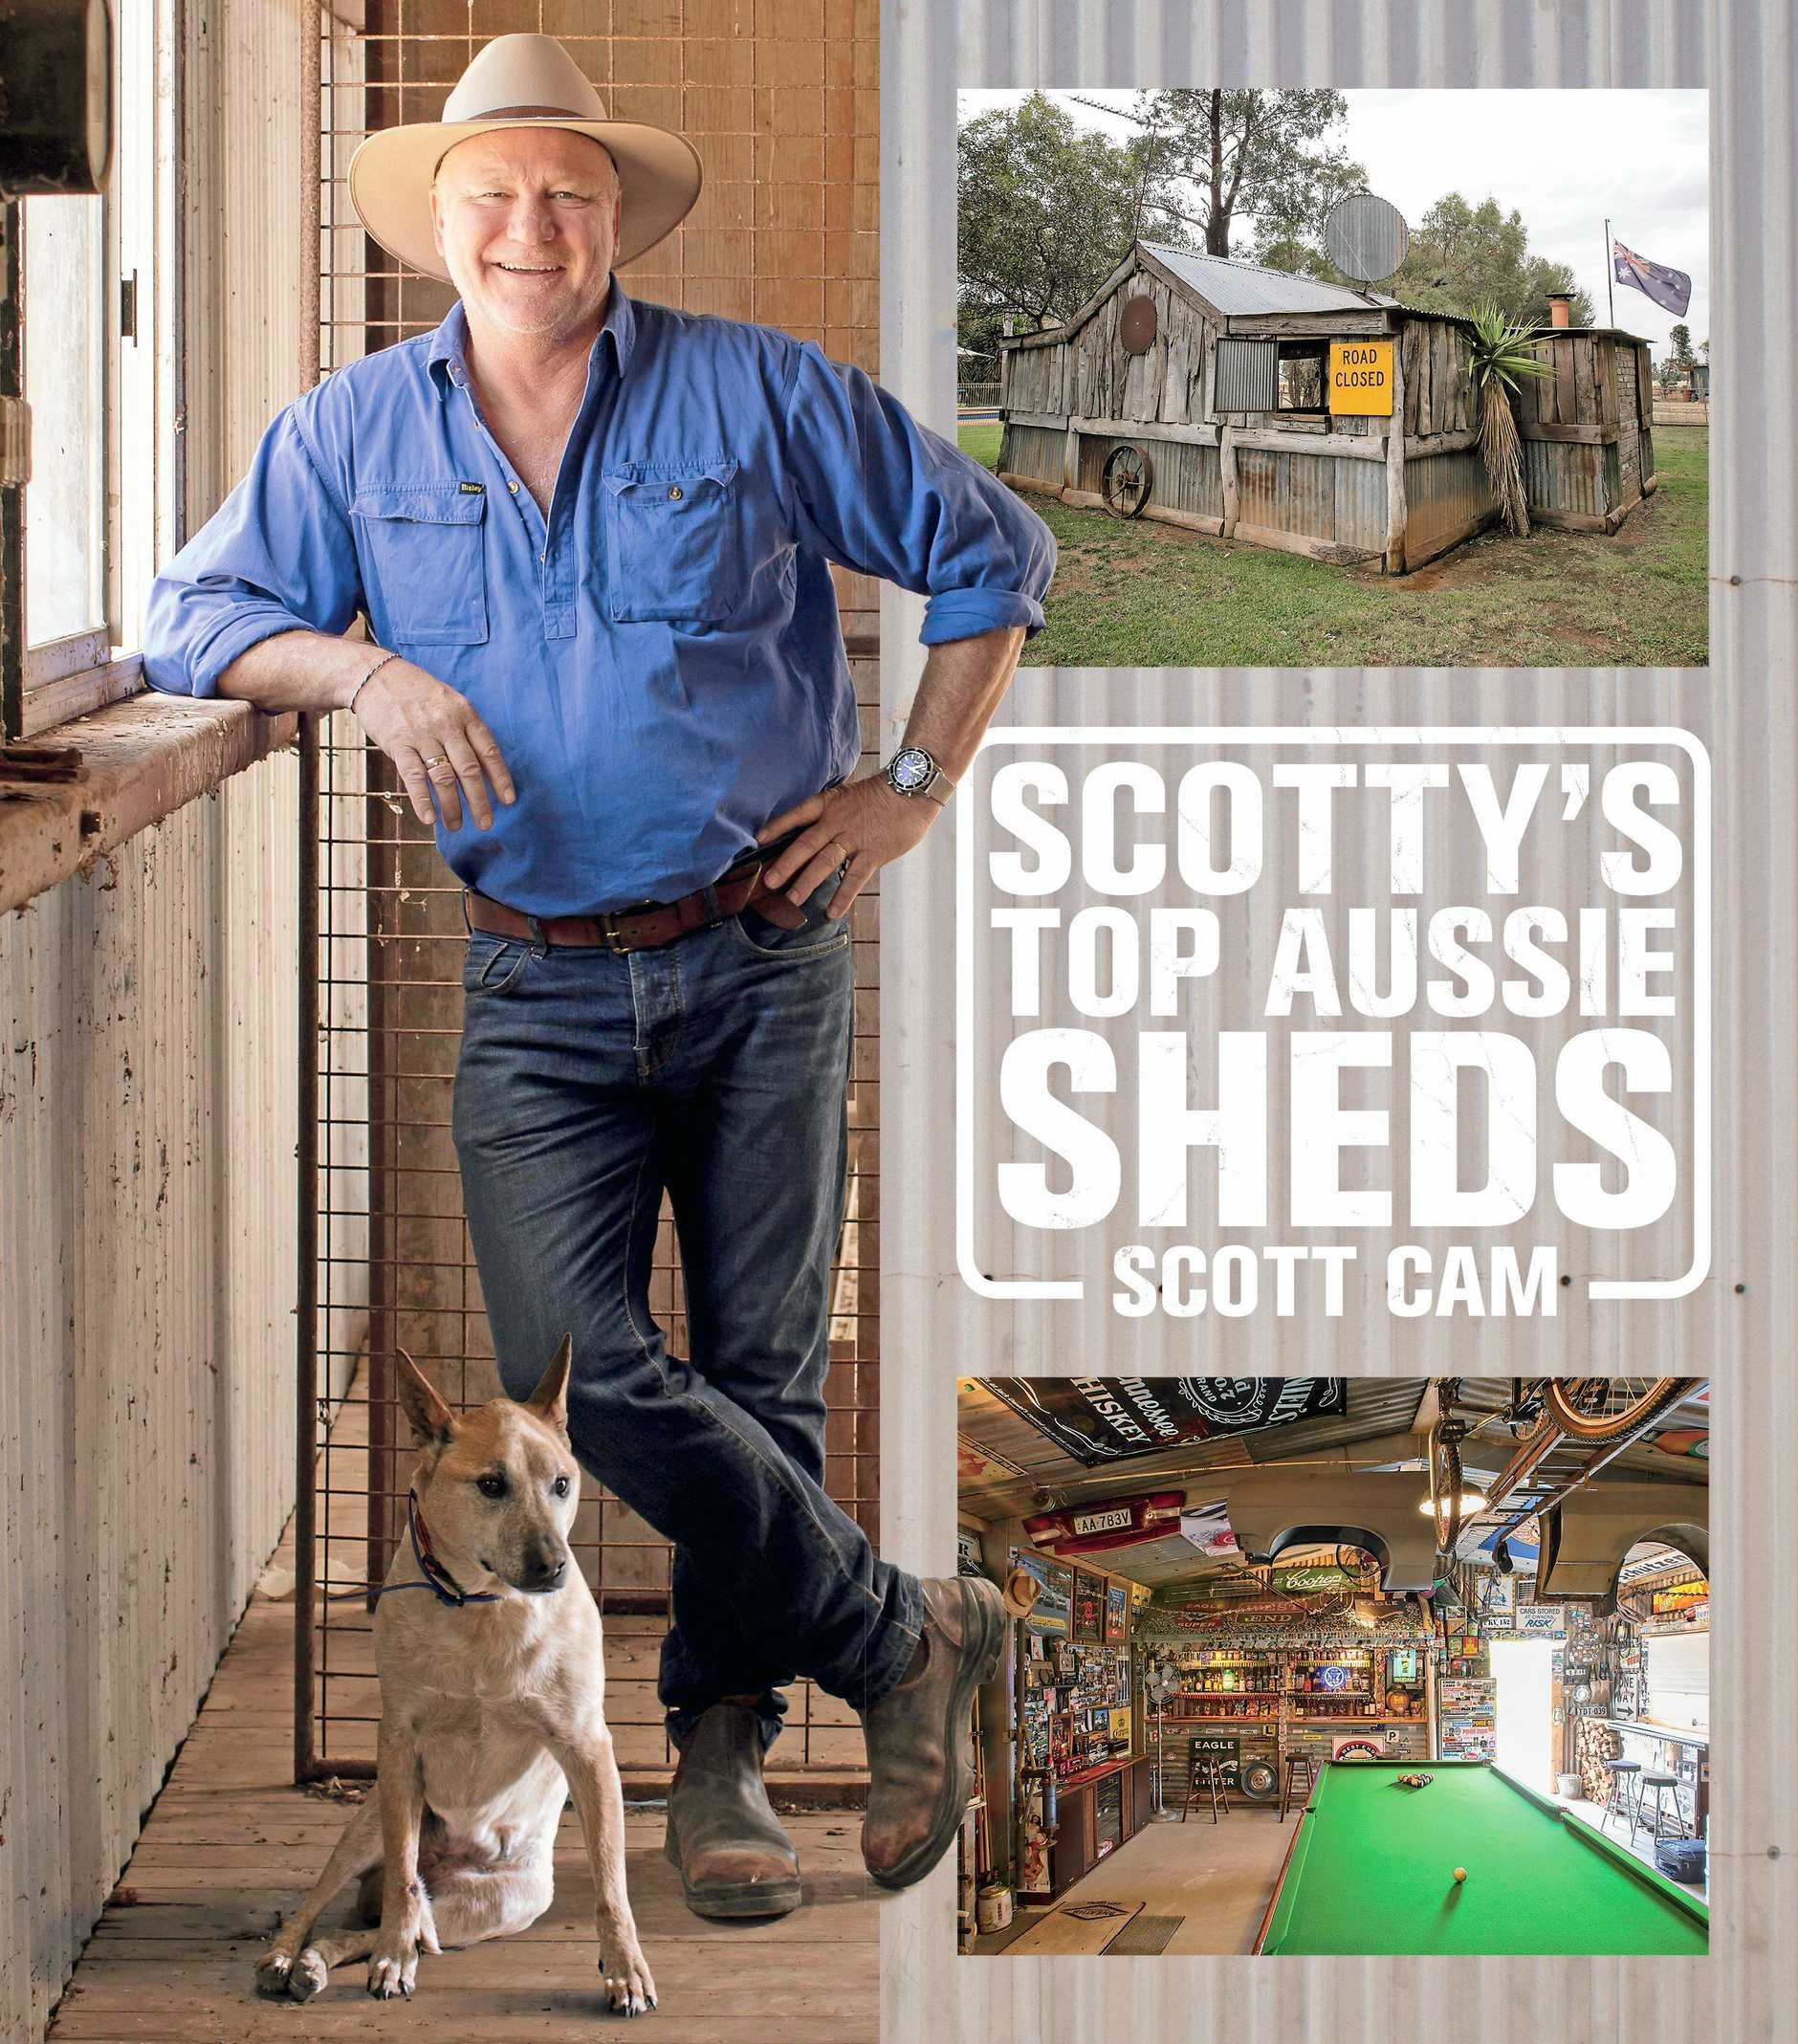 BOOKS: Join Scott Cam as he takes you on a journey through his top 20 Aussie sheds.